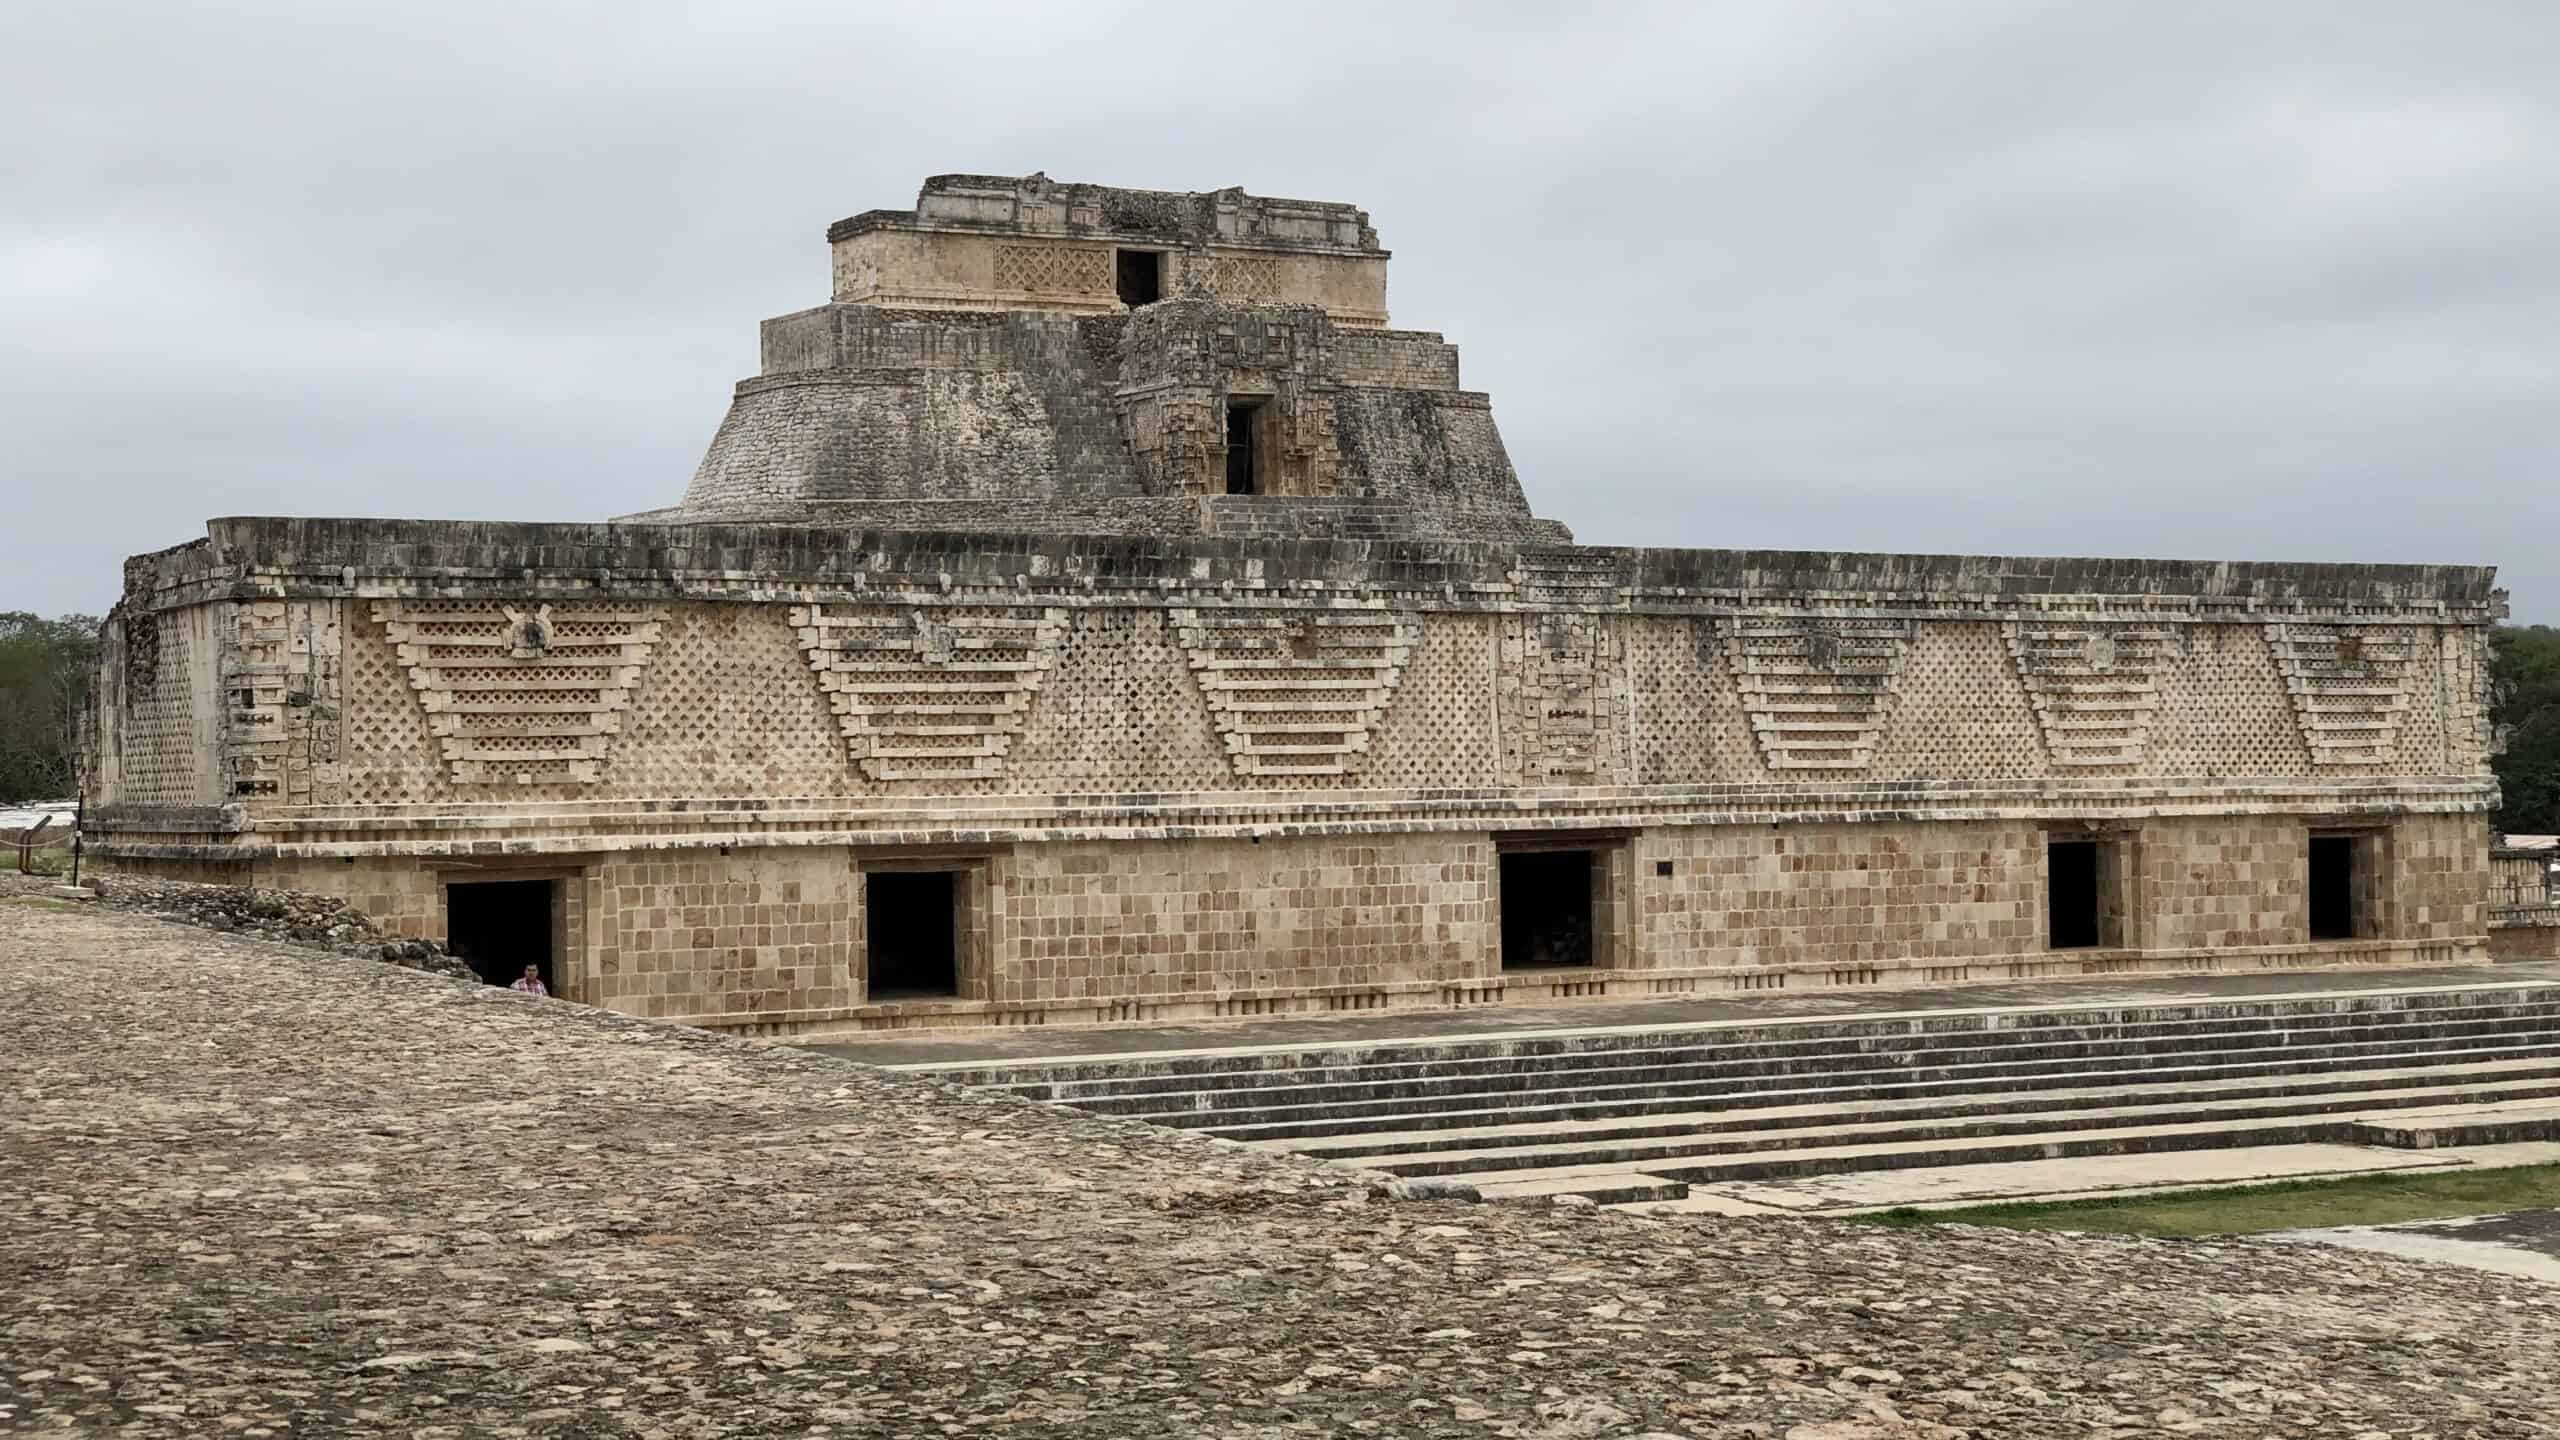 Uxmal: one side of the Quadrangle of the Nuns and the Pyramid of the Magician in the background